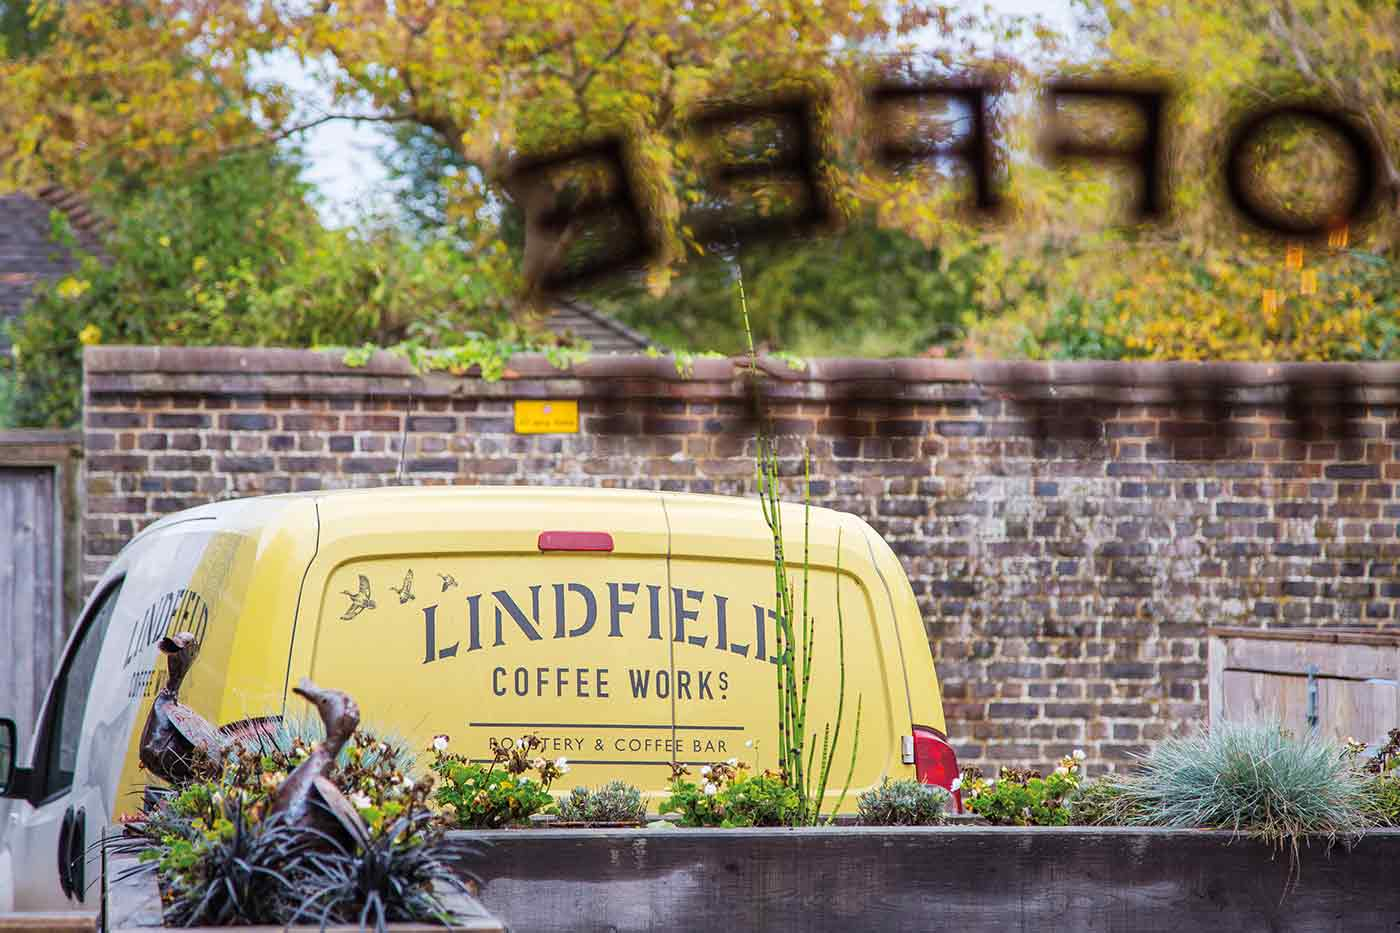 Lindfield Coffee Works, West Sussex